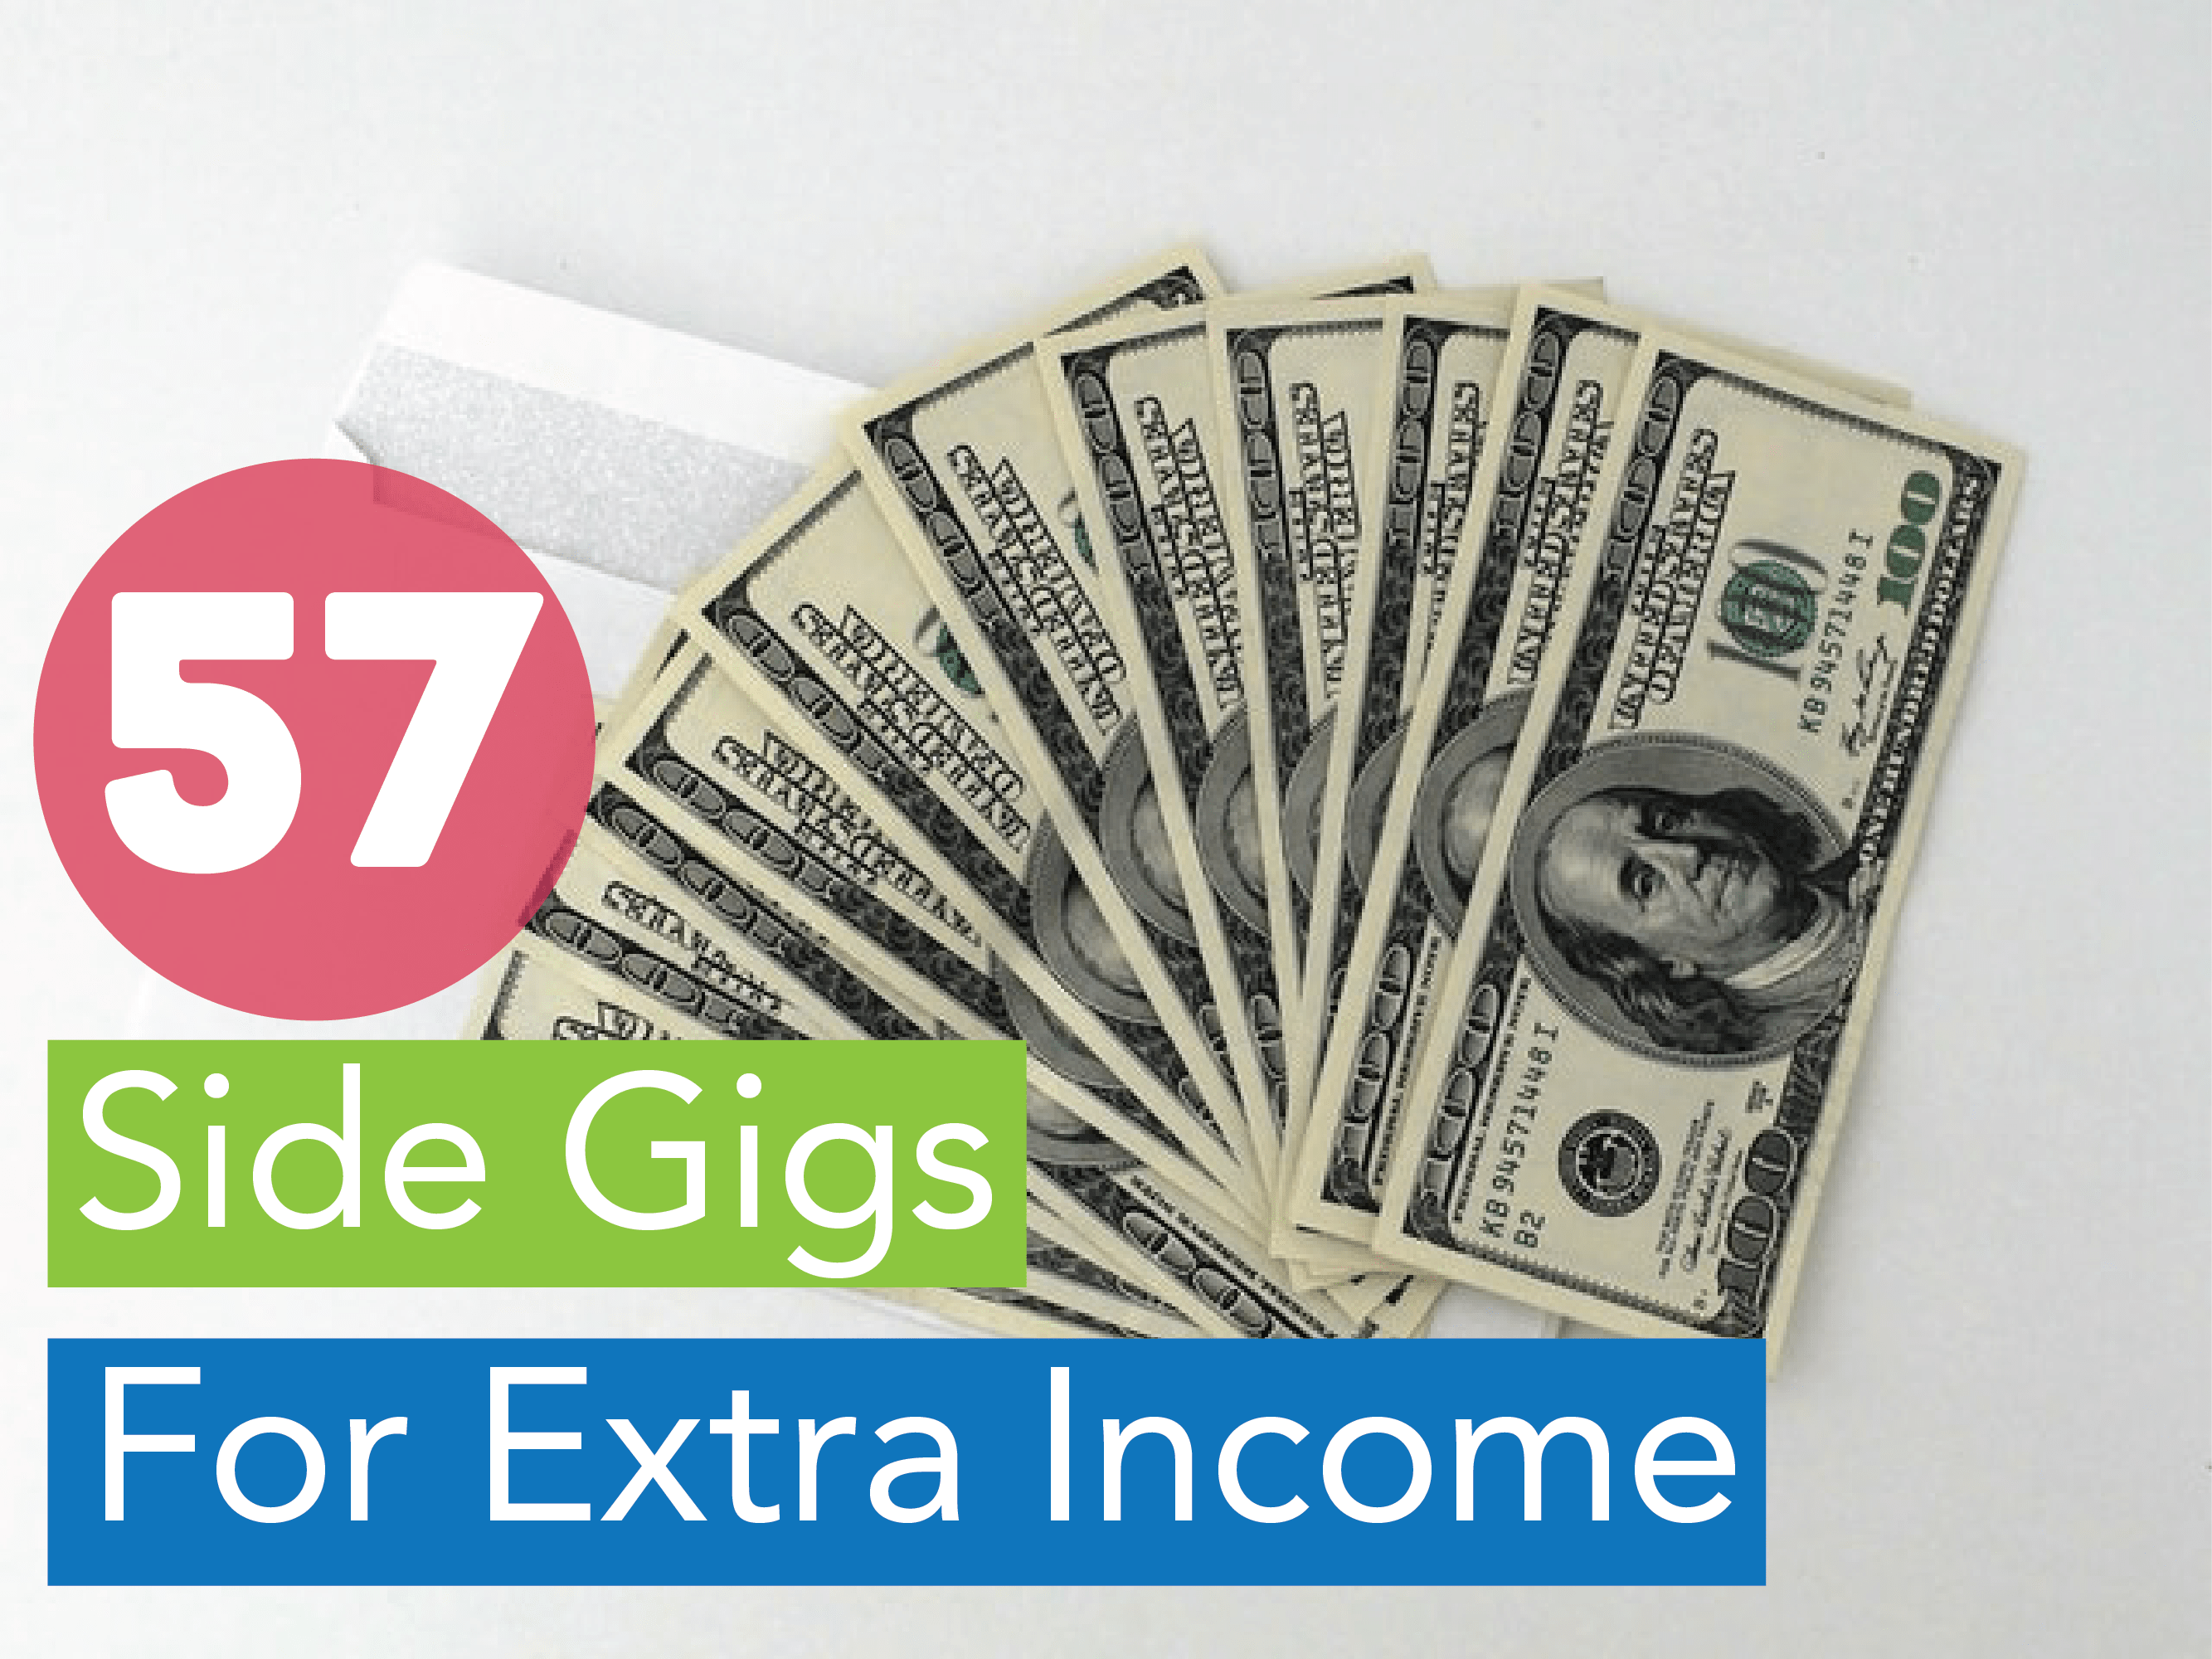 57+ Convenient Side Gigs To Make Extra Money On Your Free Time